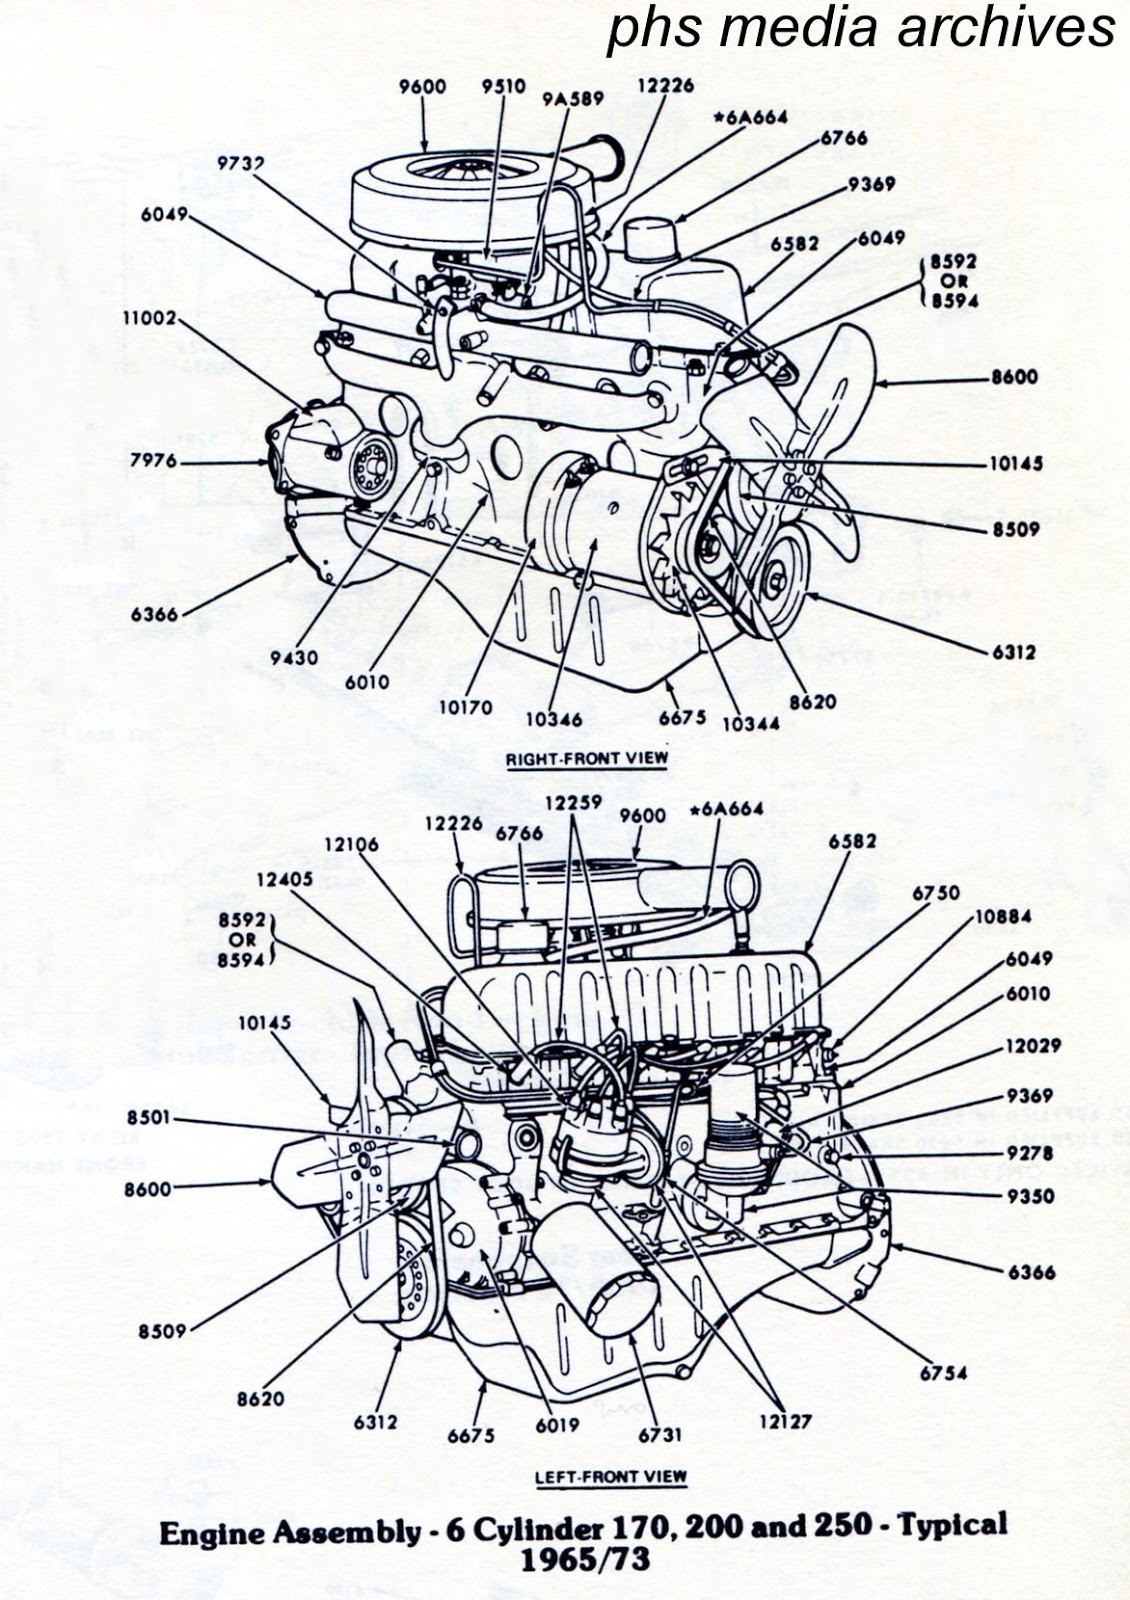 small resolution of the straight six engine changed in displacement over the years to become a 250 by 1971